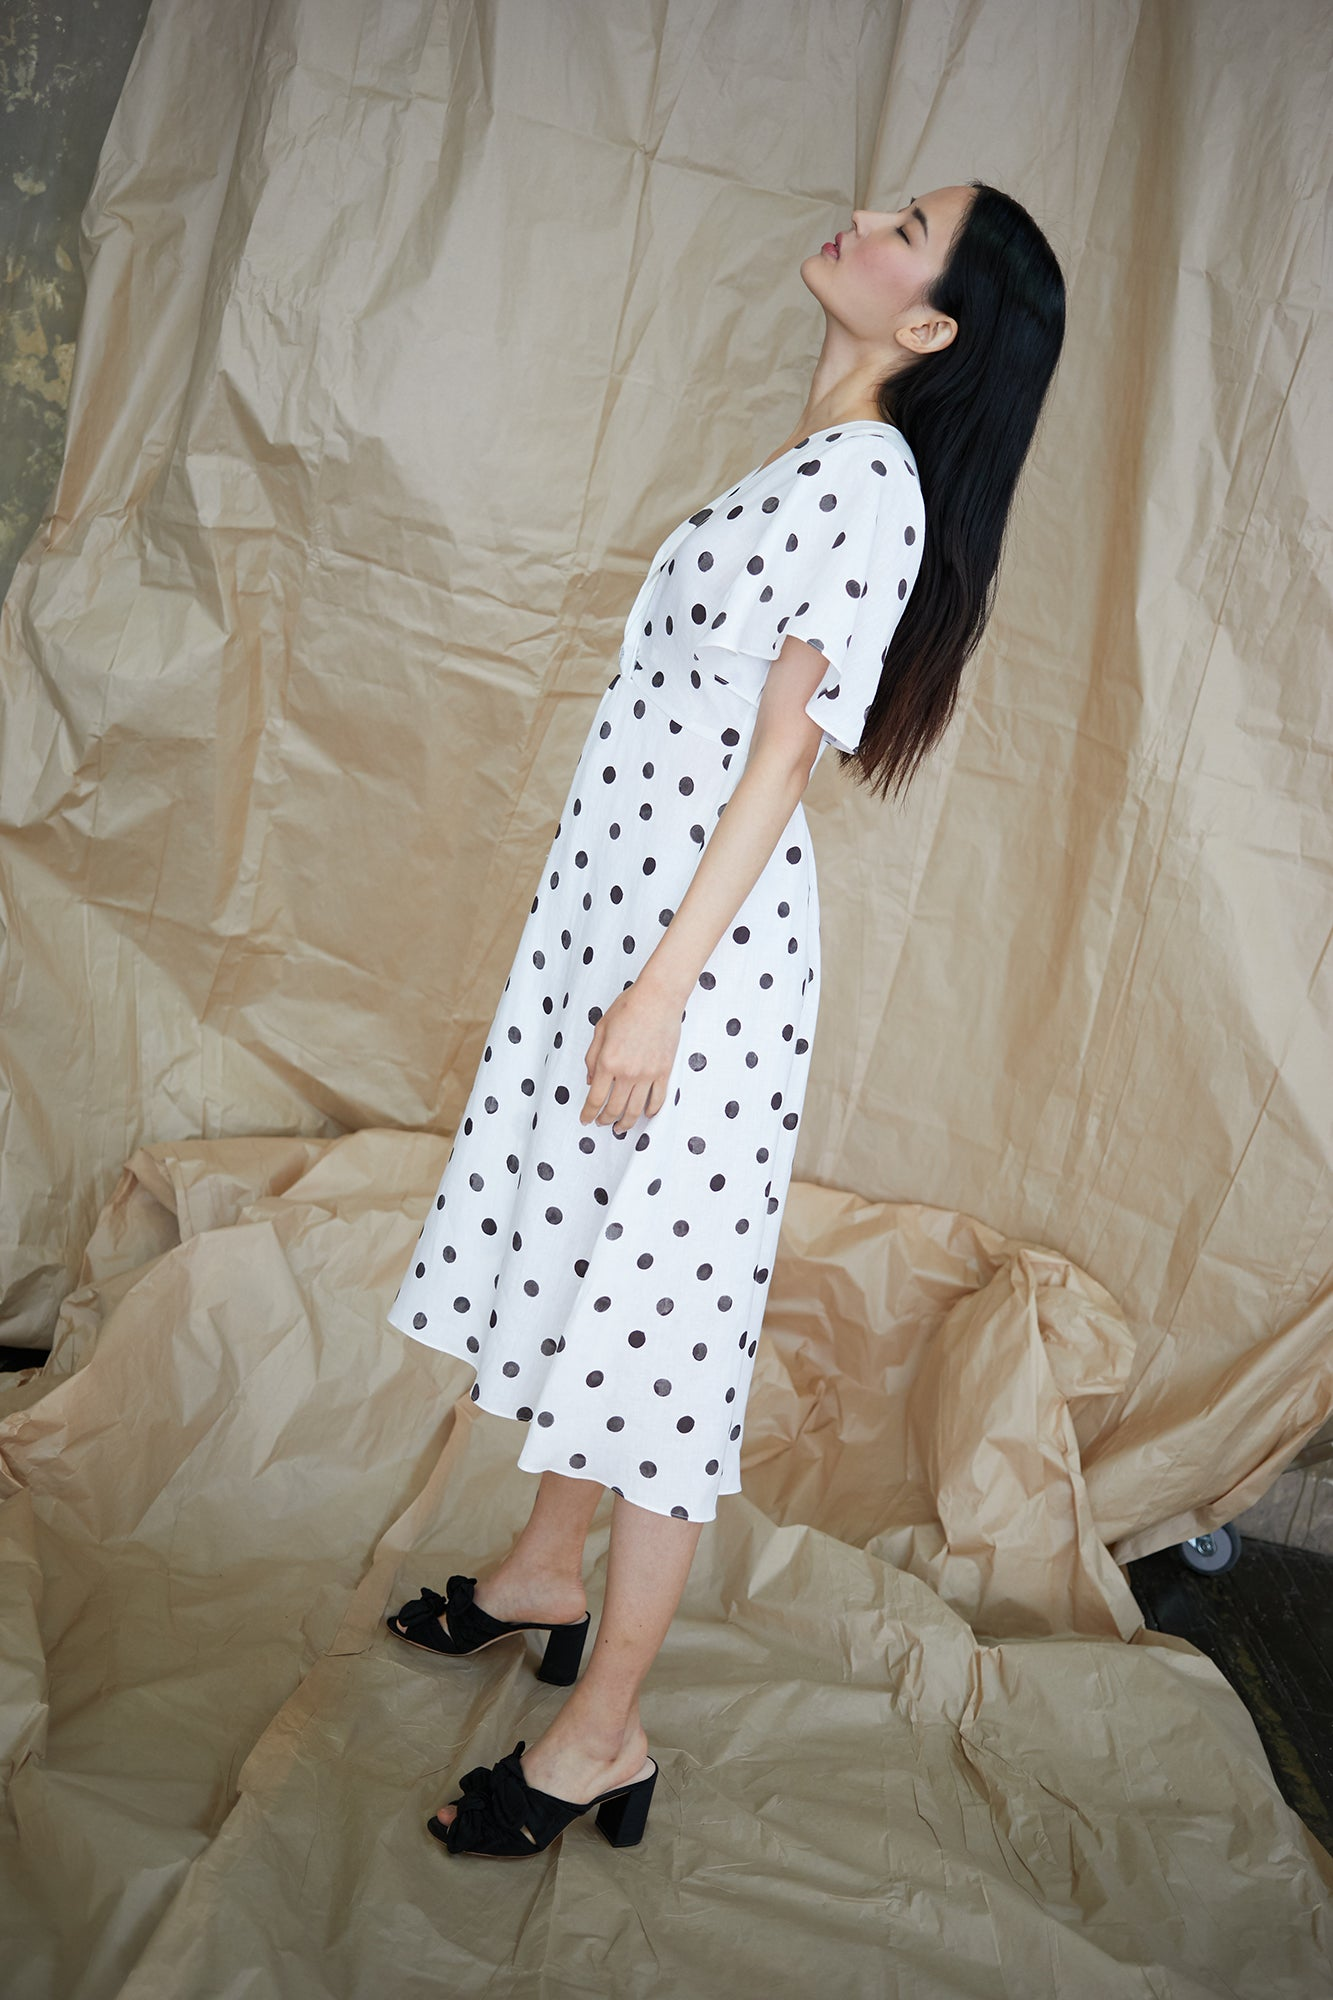 Twist Dress in White/Black Polka Dots